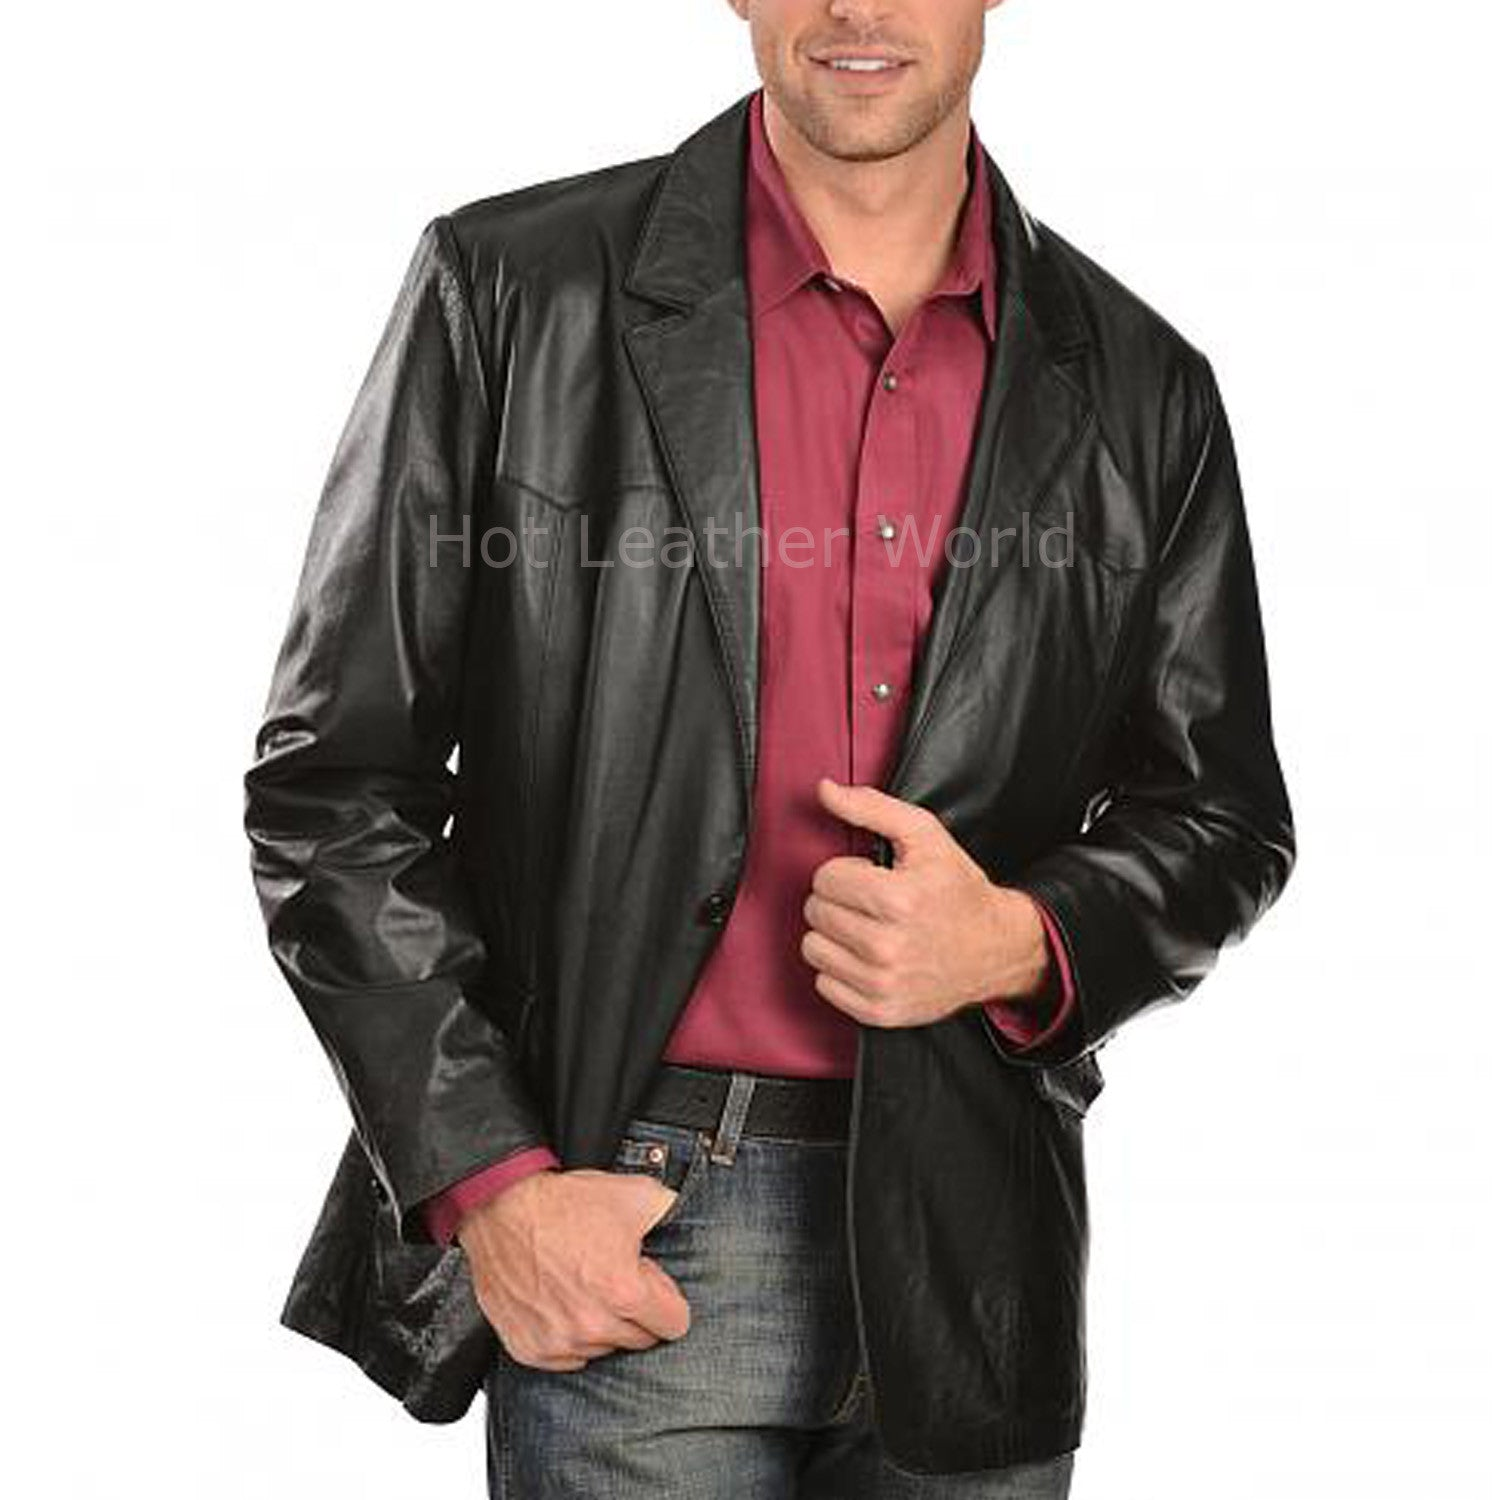 Designer Style Men Leather Blazer -  HOTLEATHERWORLD